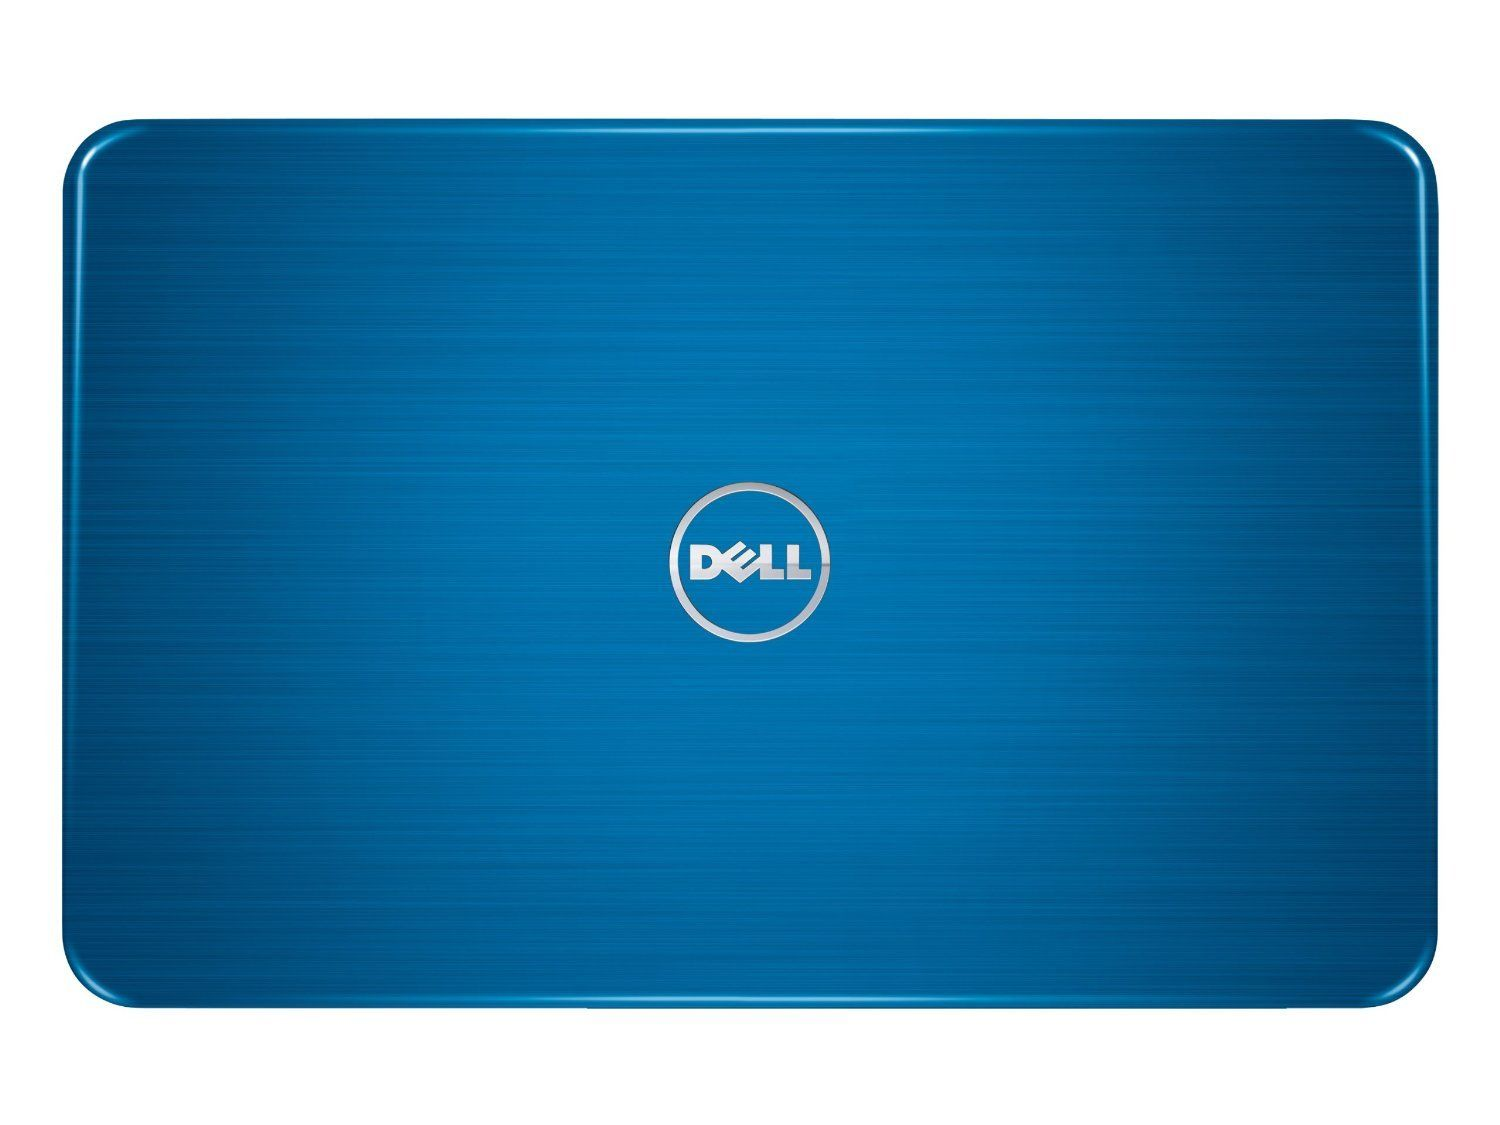 Dell MGK85 SWITCH by Design Studio 17-Inch (Peacock Blue)